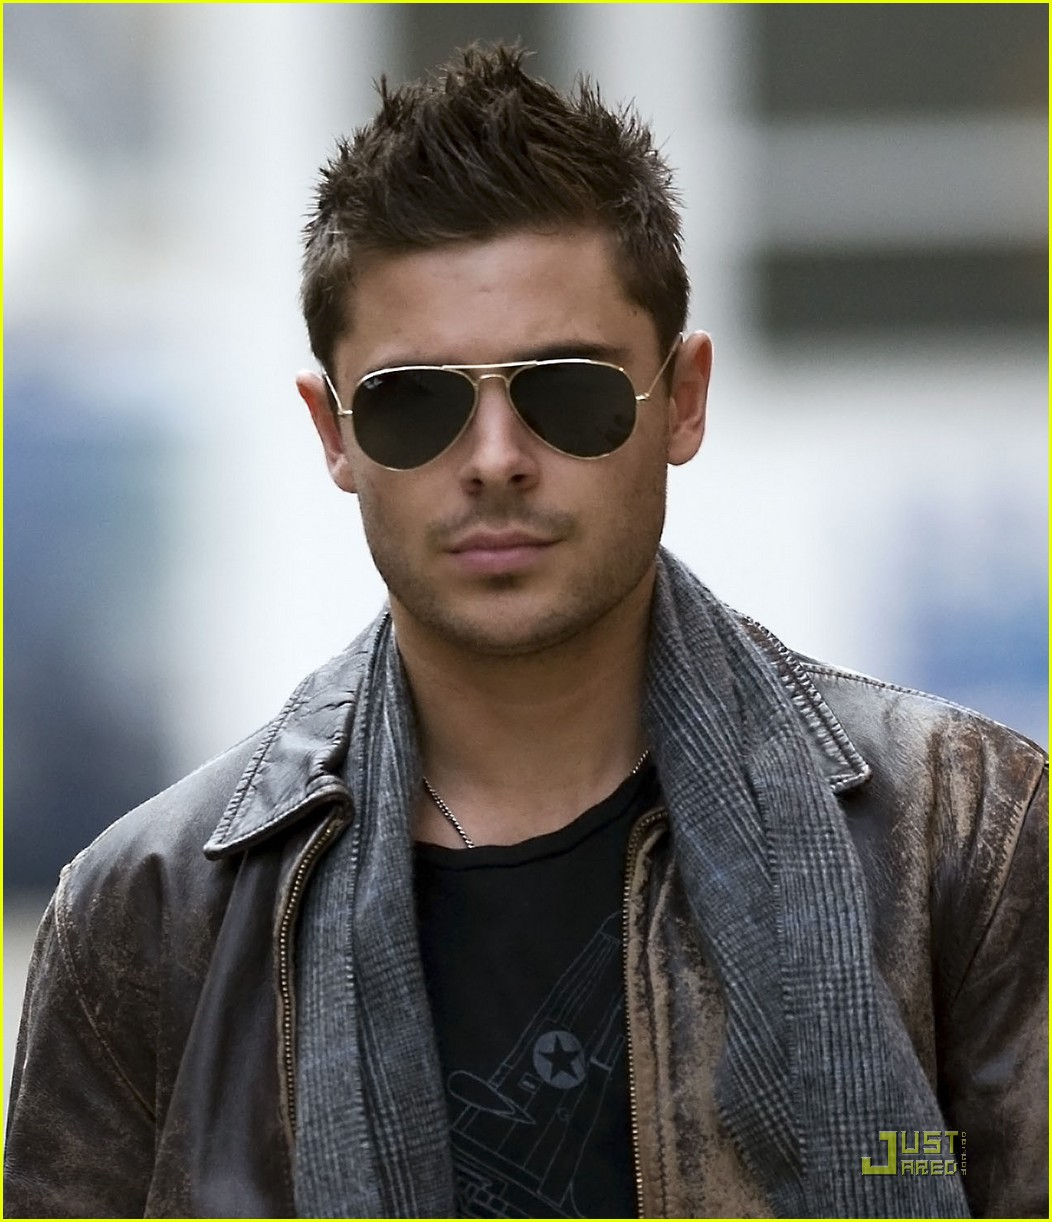 Zac Efron Pictures 59